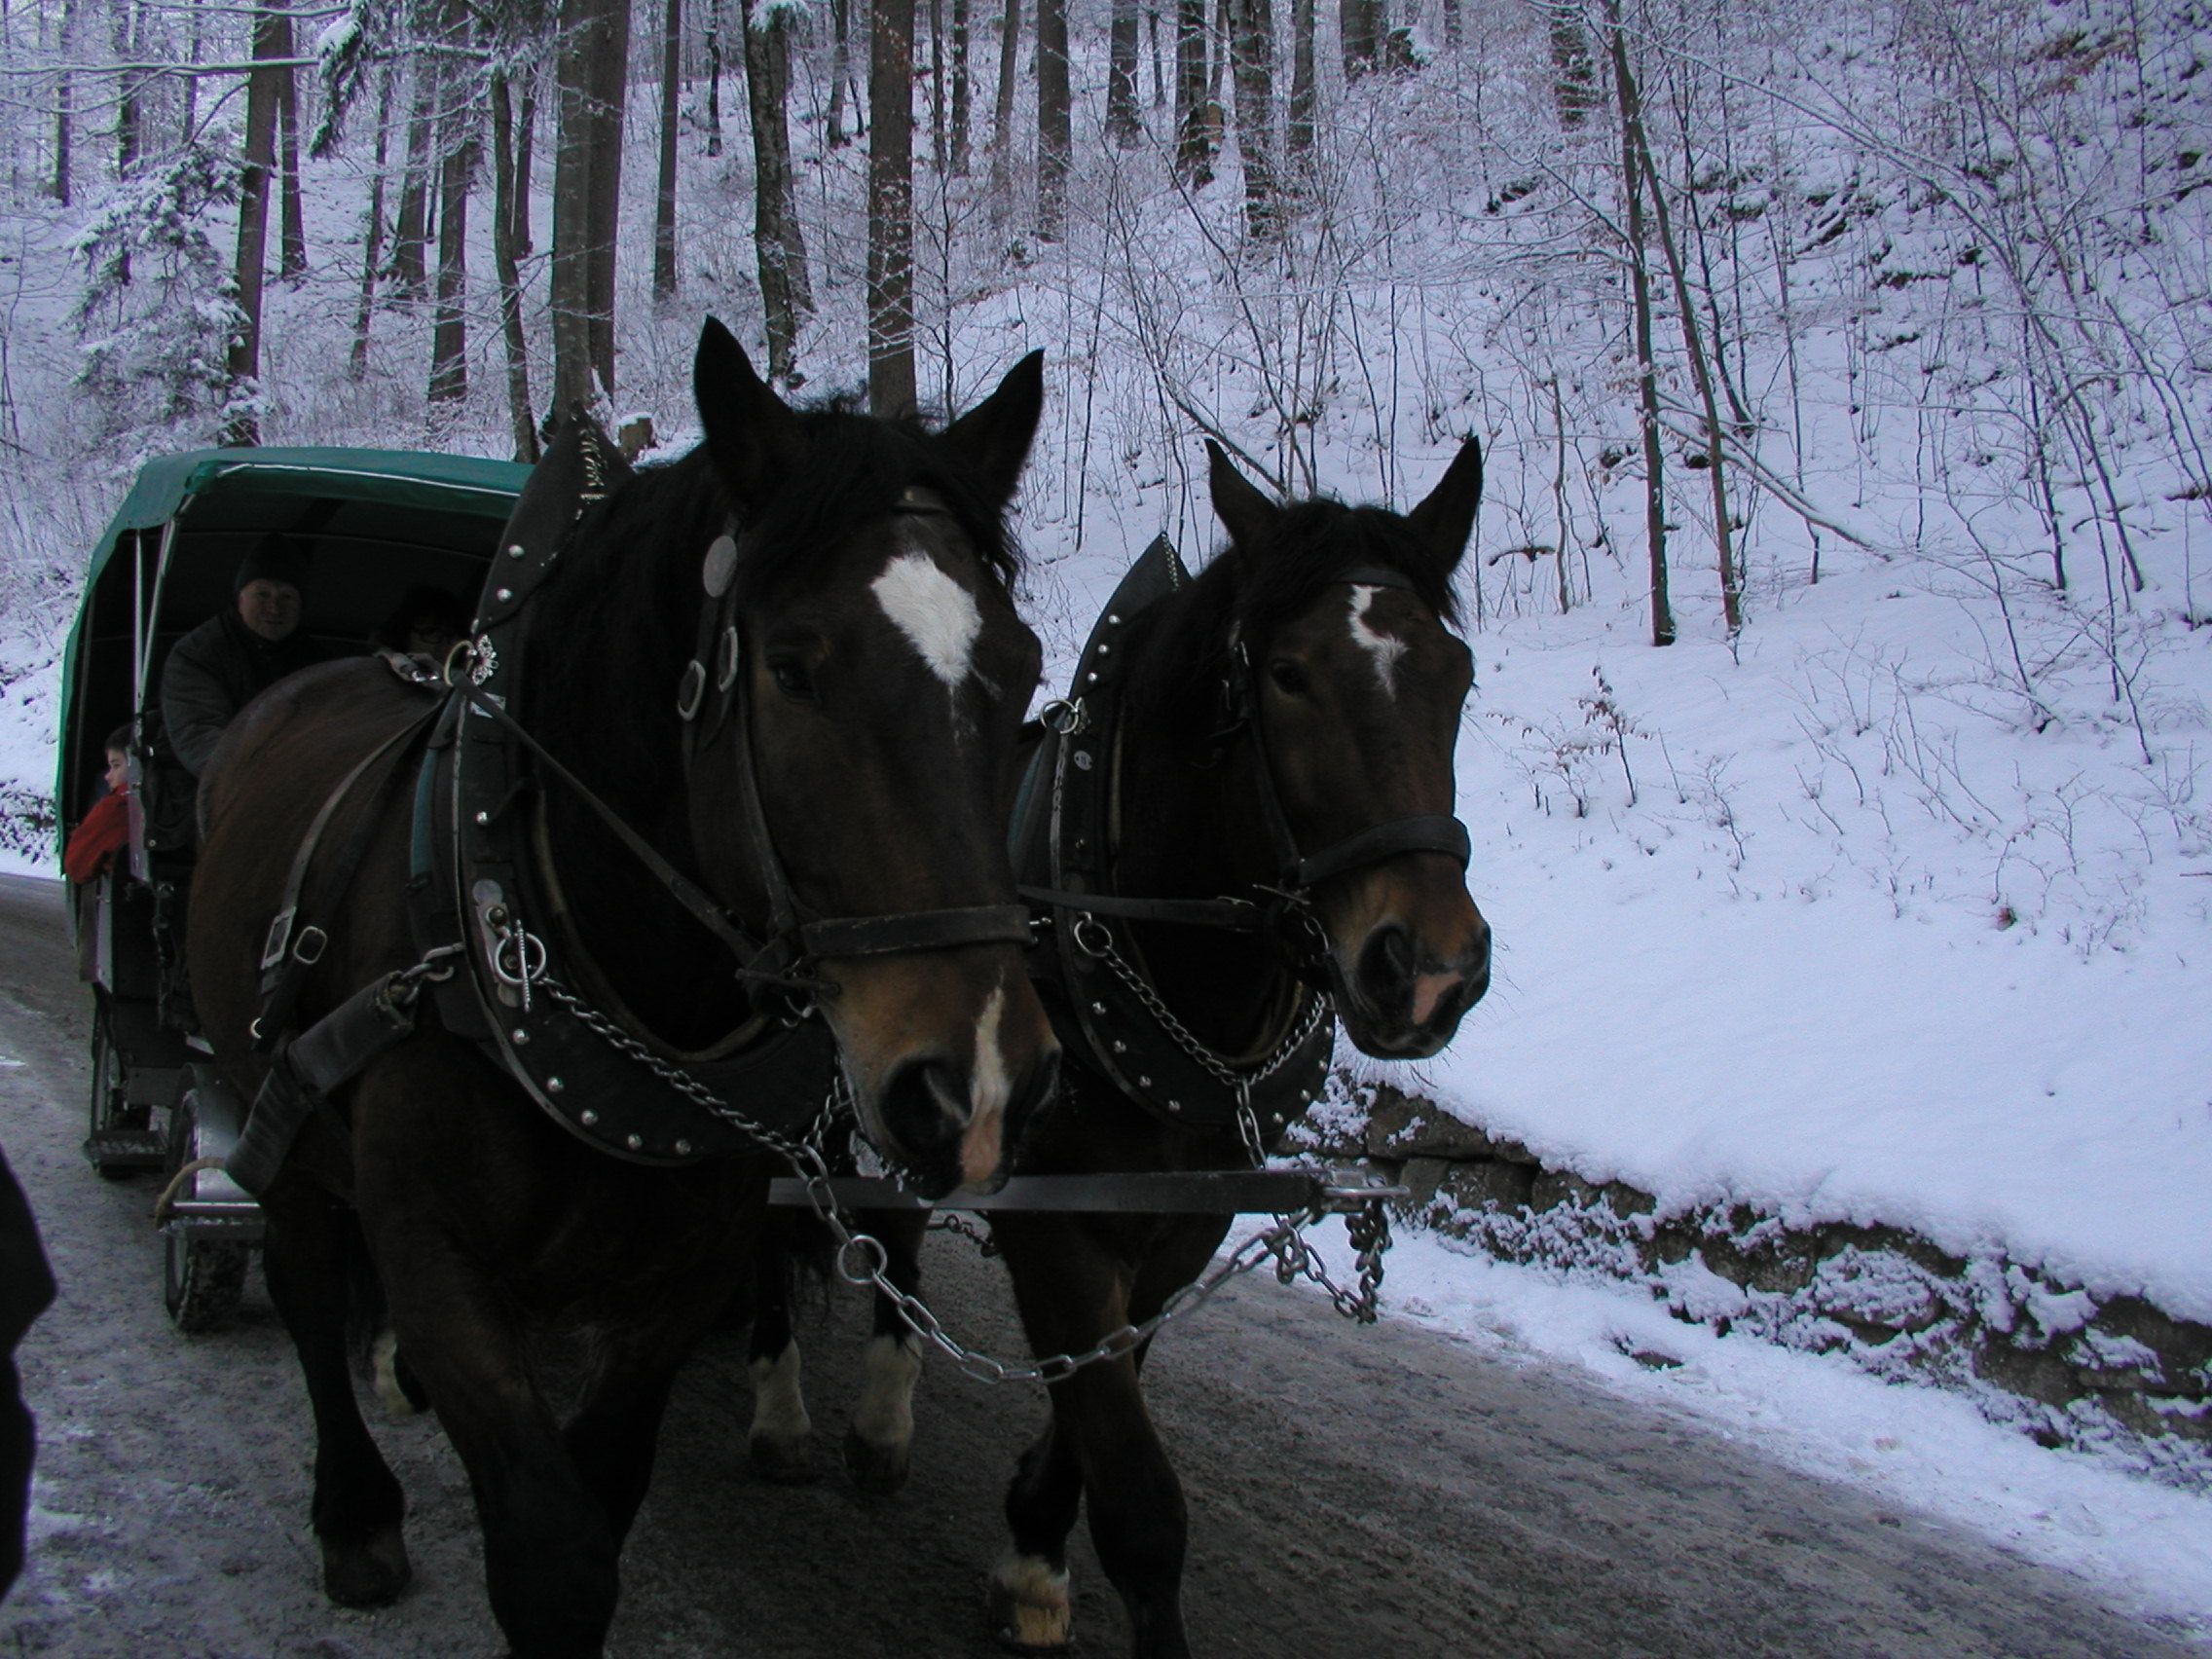 Horsedrawn Carriage rides up to the Neuschwanstein castle.